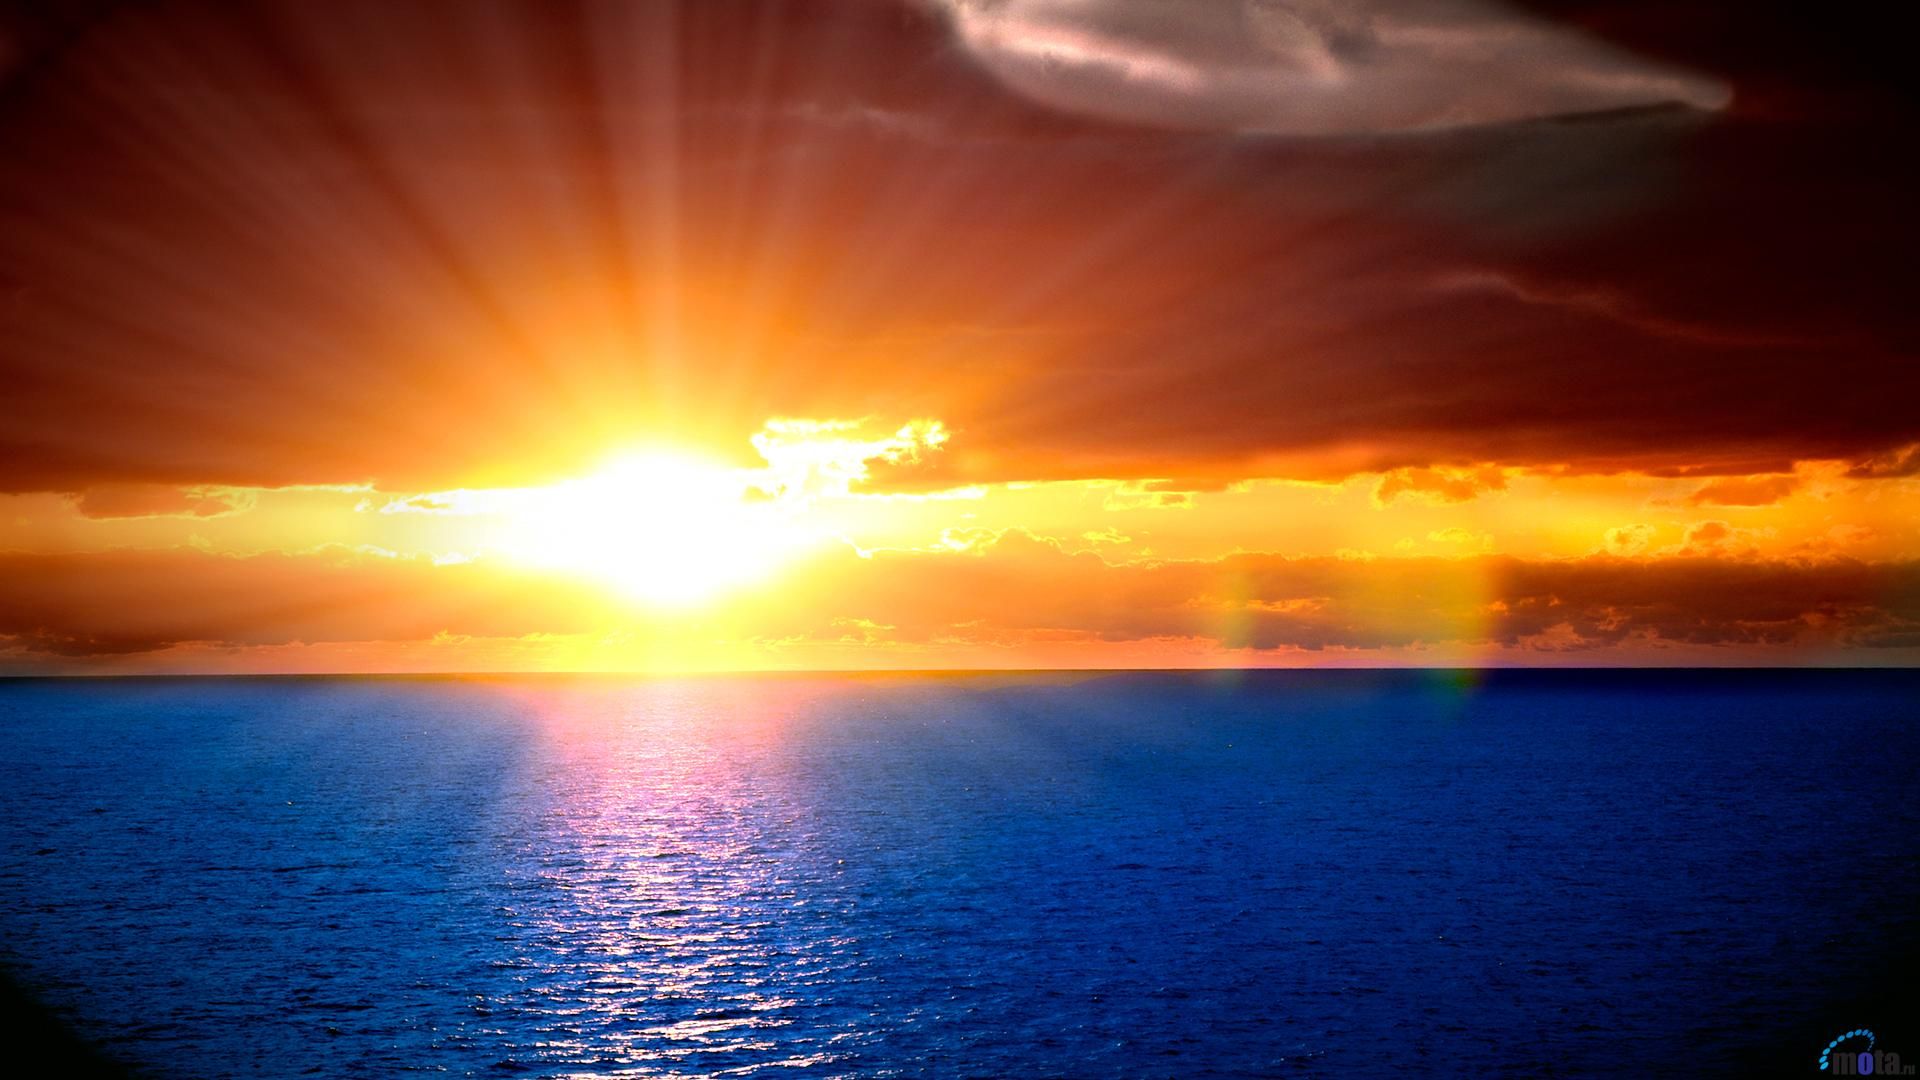 Download Wallpaper Orange sunset in the blue sea 1920 x 1080 HDTV 1920x1080